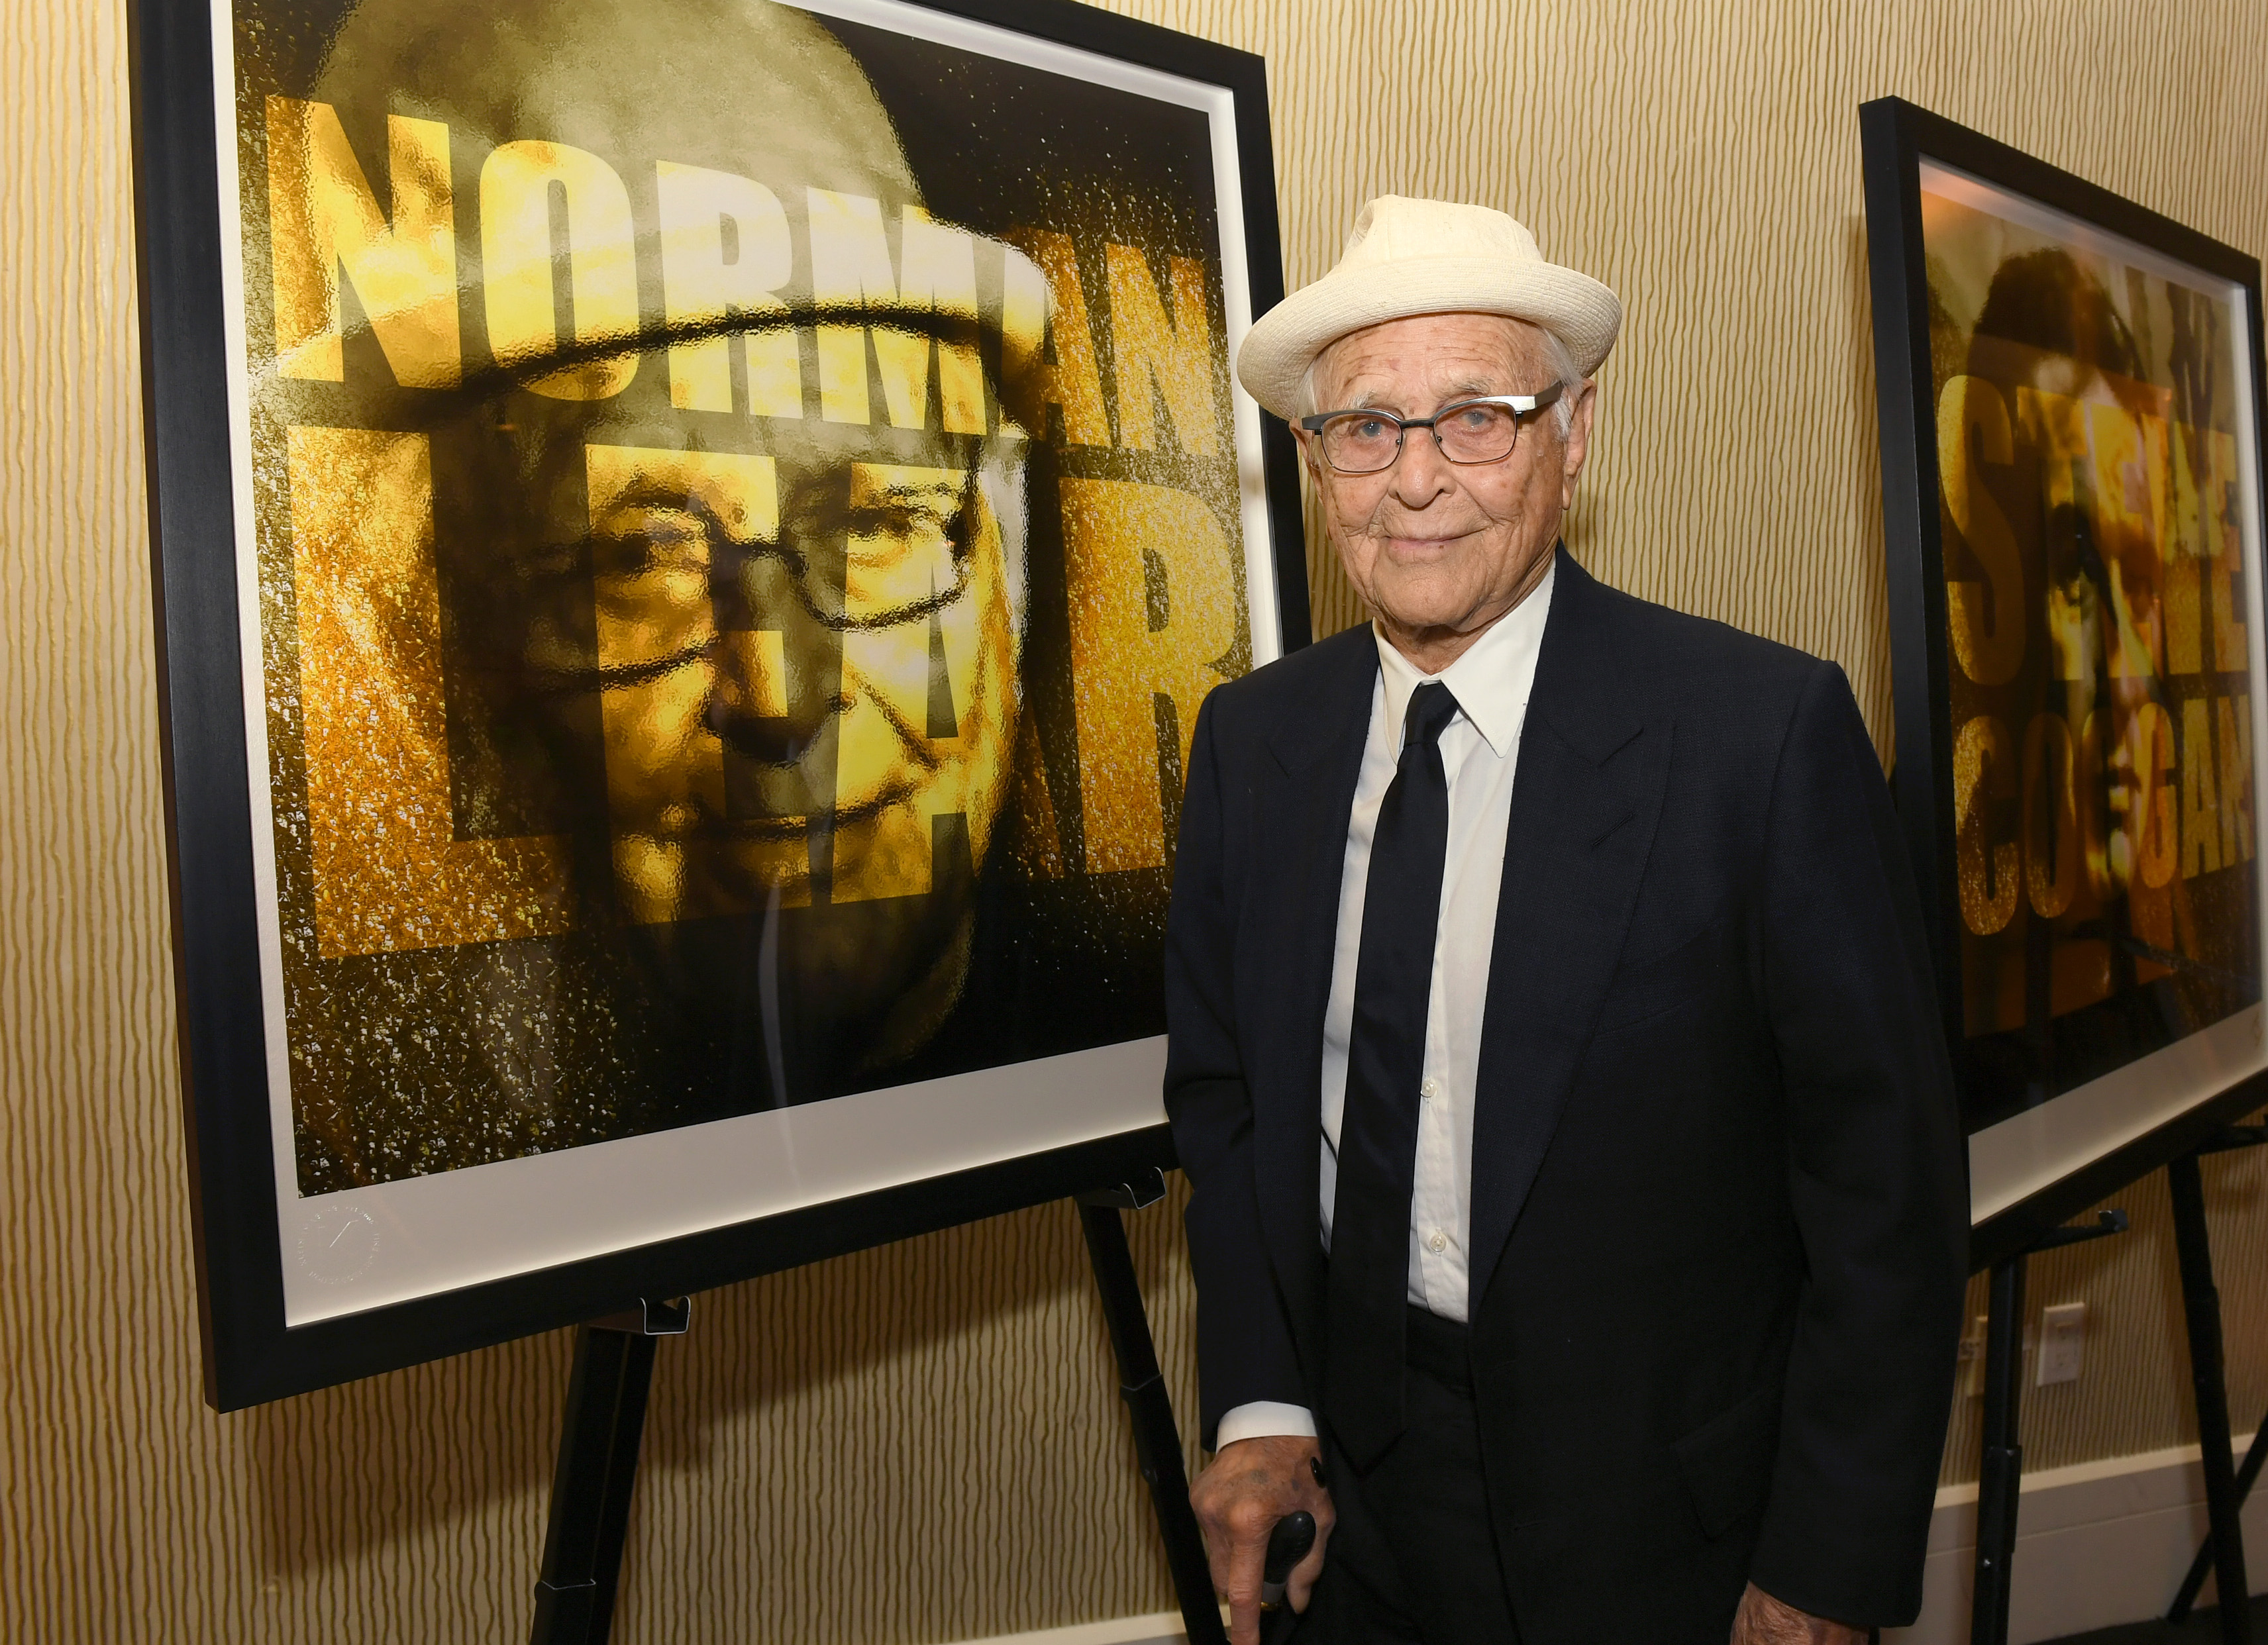 Norman Lear. Image Credit: Getty Images